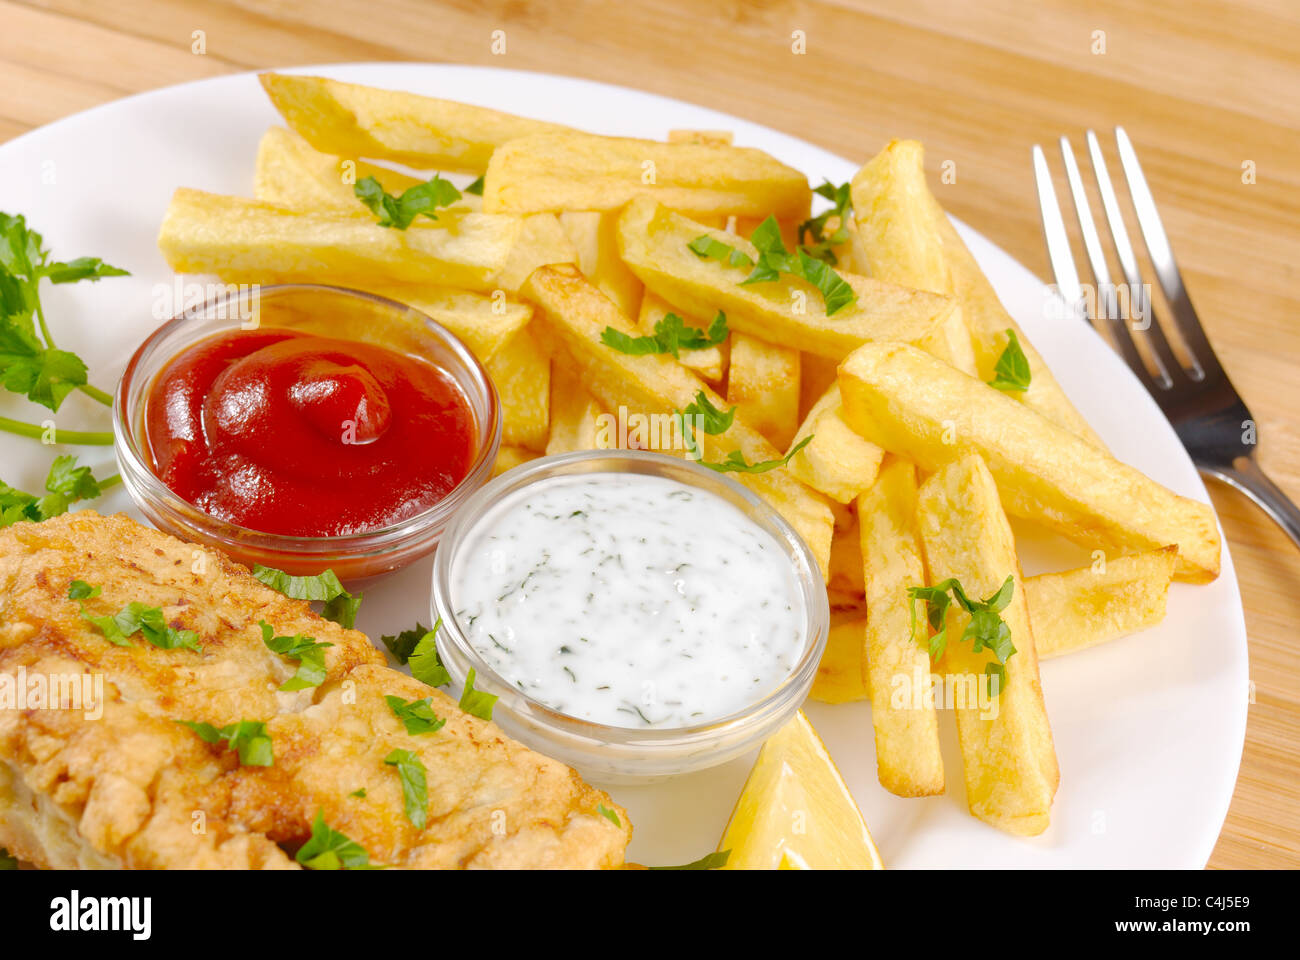 White plate with fish and chips, mayo, lemon and ketchup - Stock Image